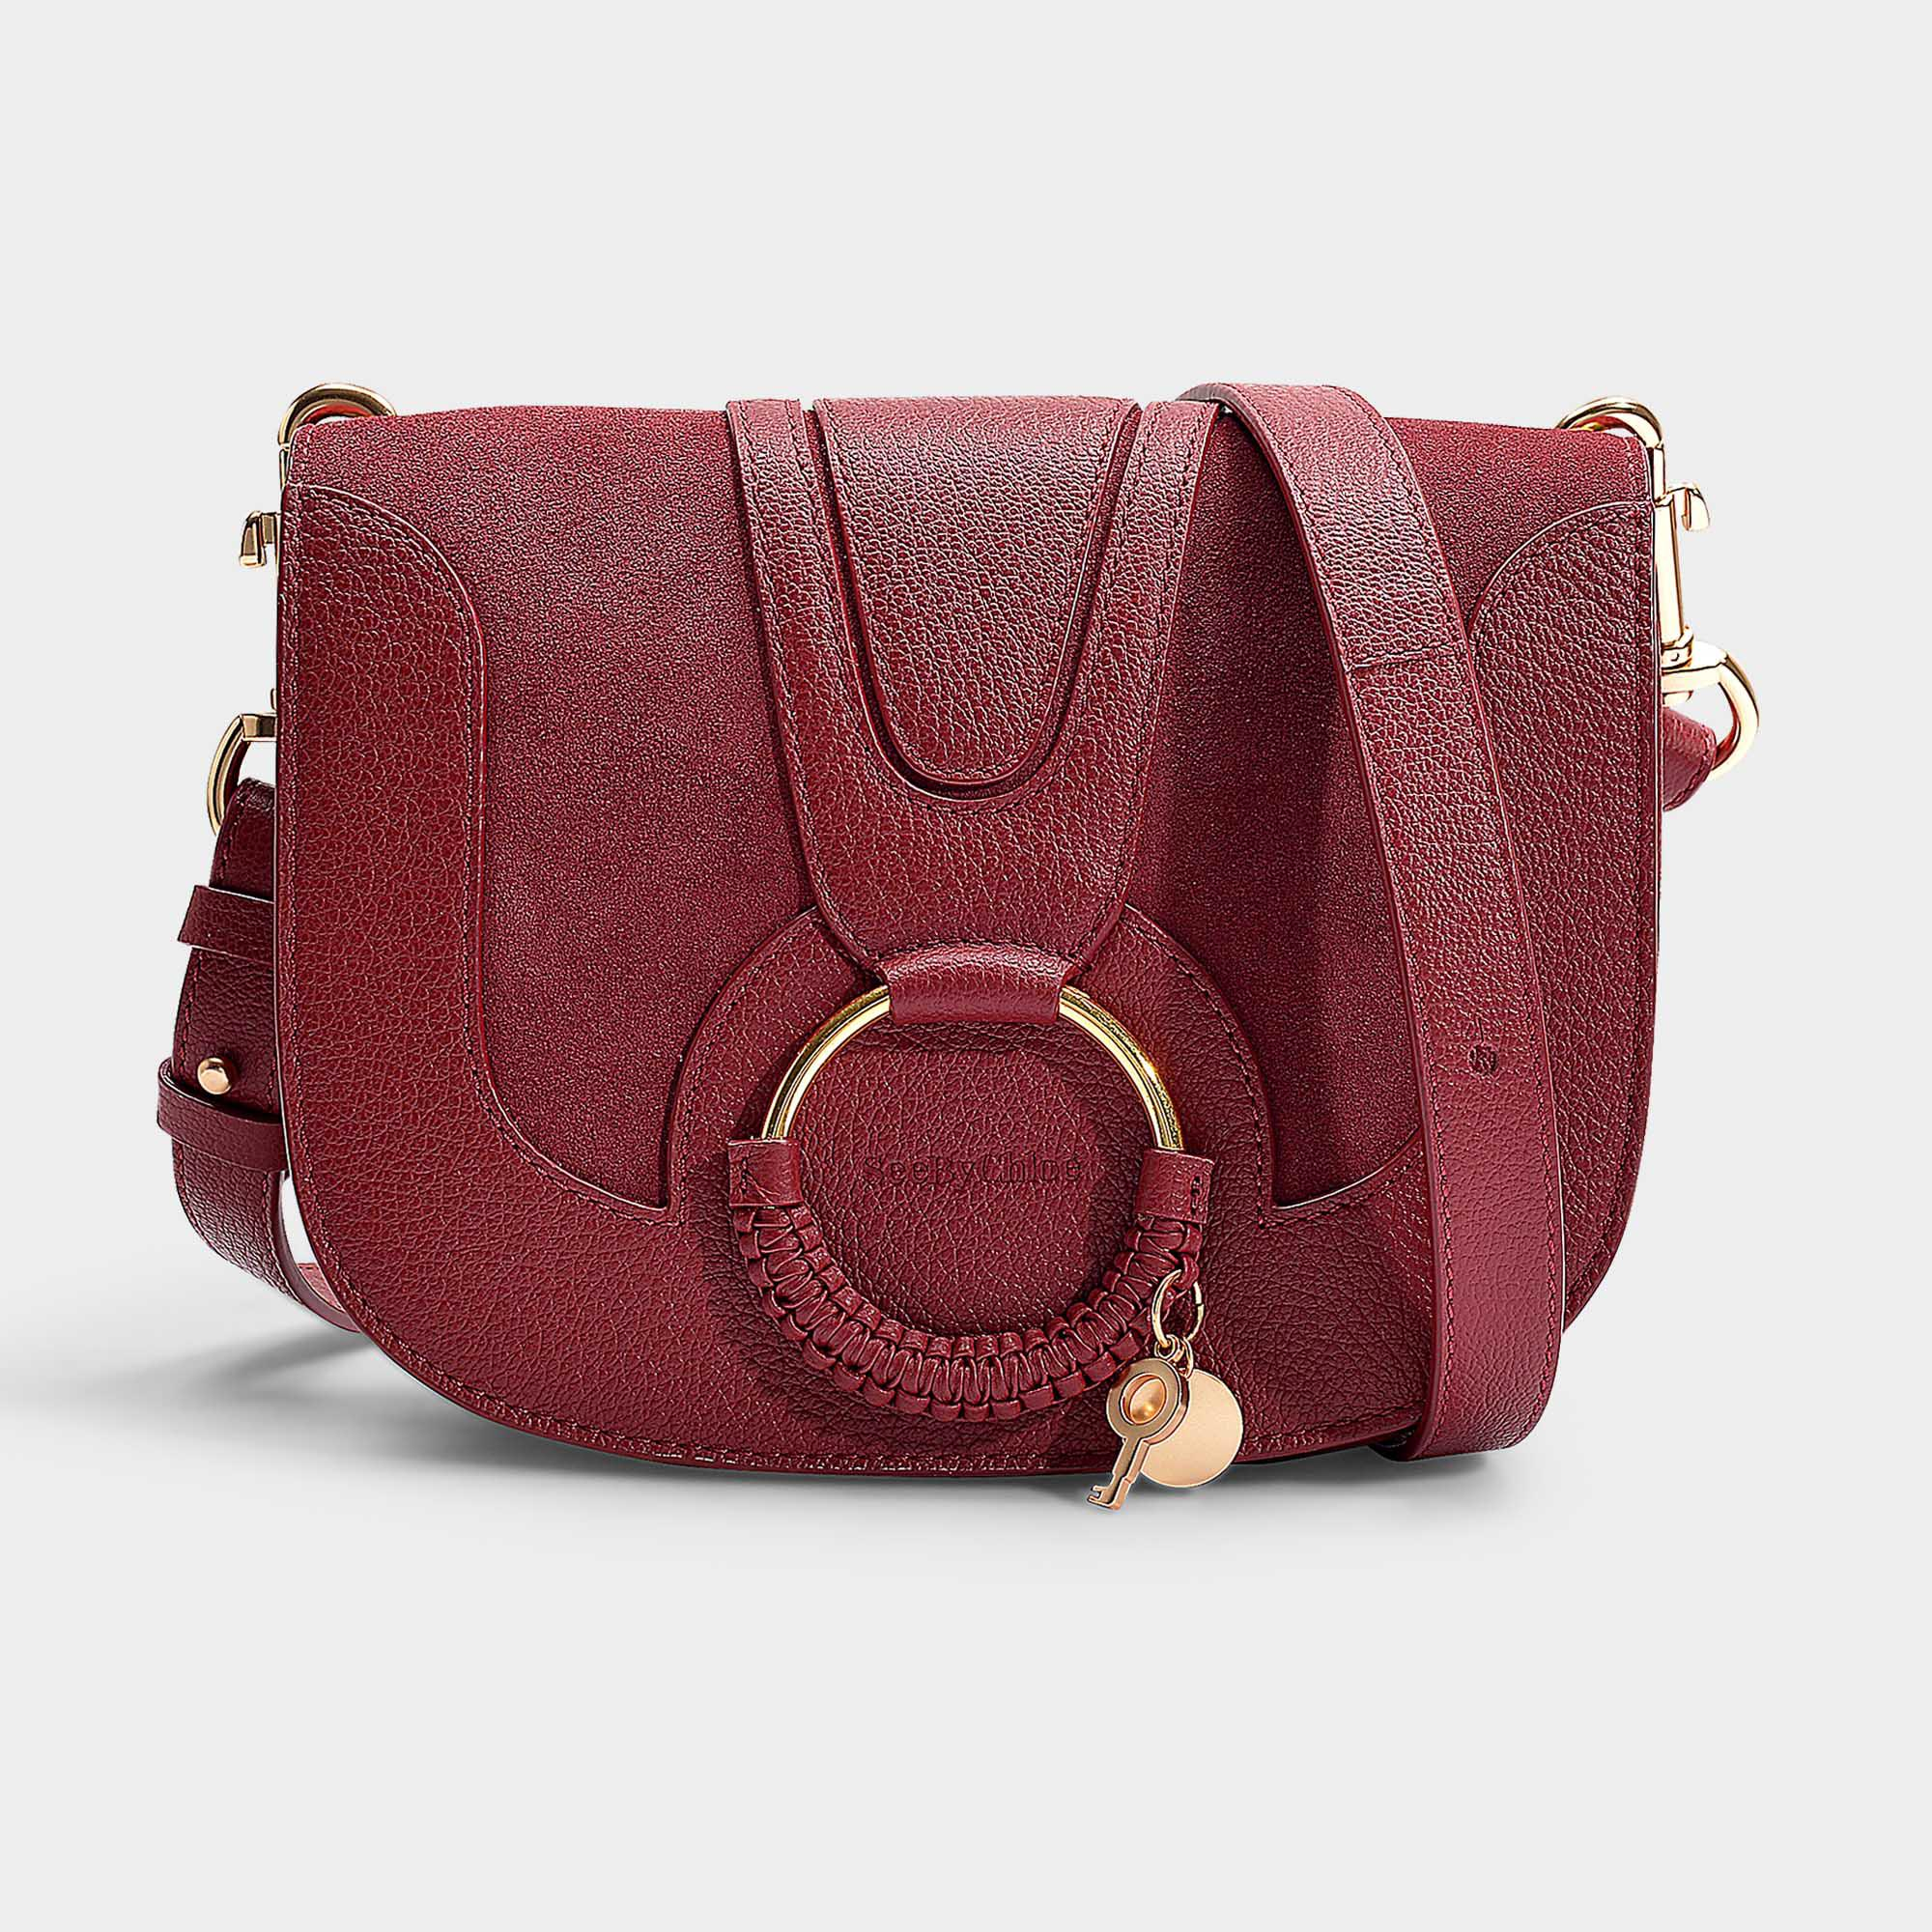 a12bc9b26 see-by-chloe--Hana-Small-Crossbody-Bag -In-Acerola-Grained-Cowskin-And-Suede.jpeg